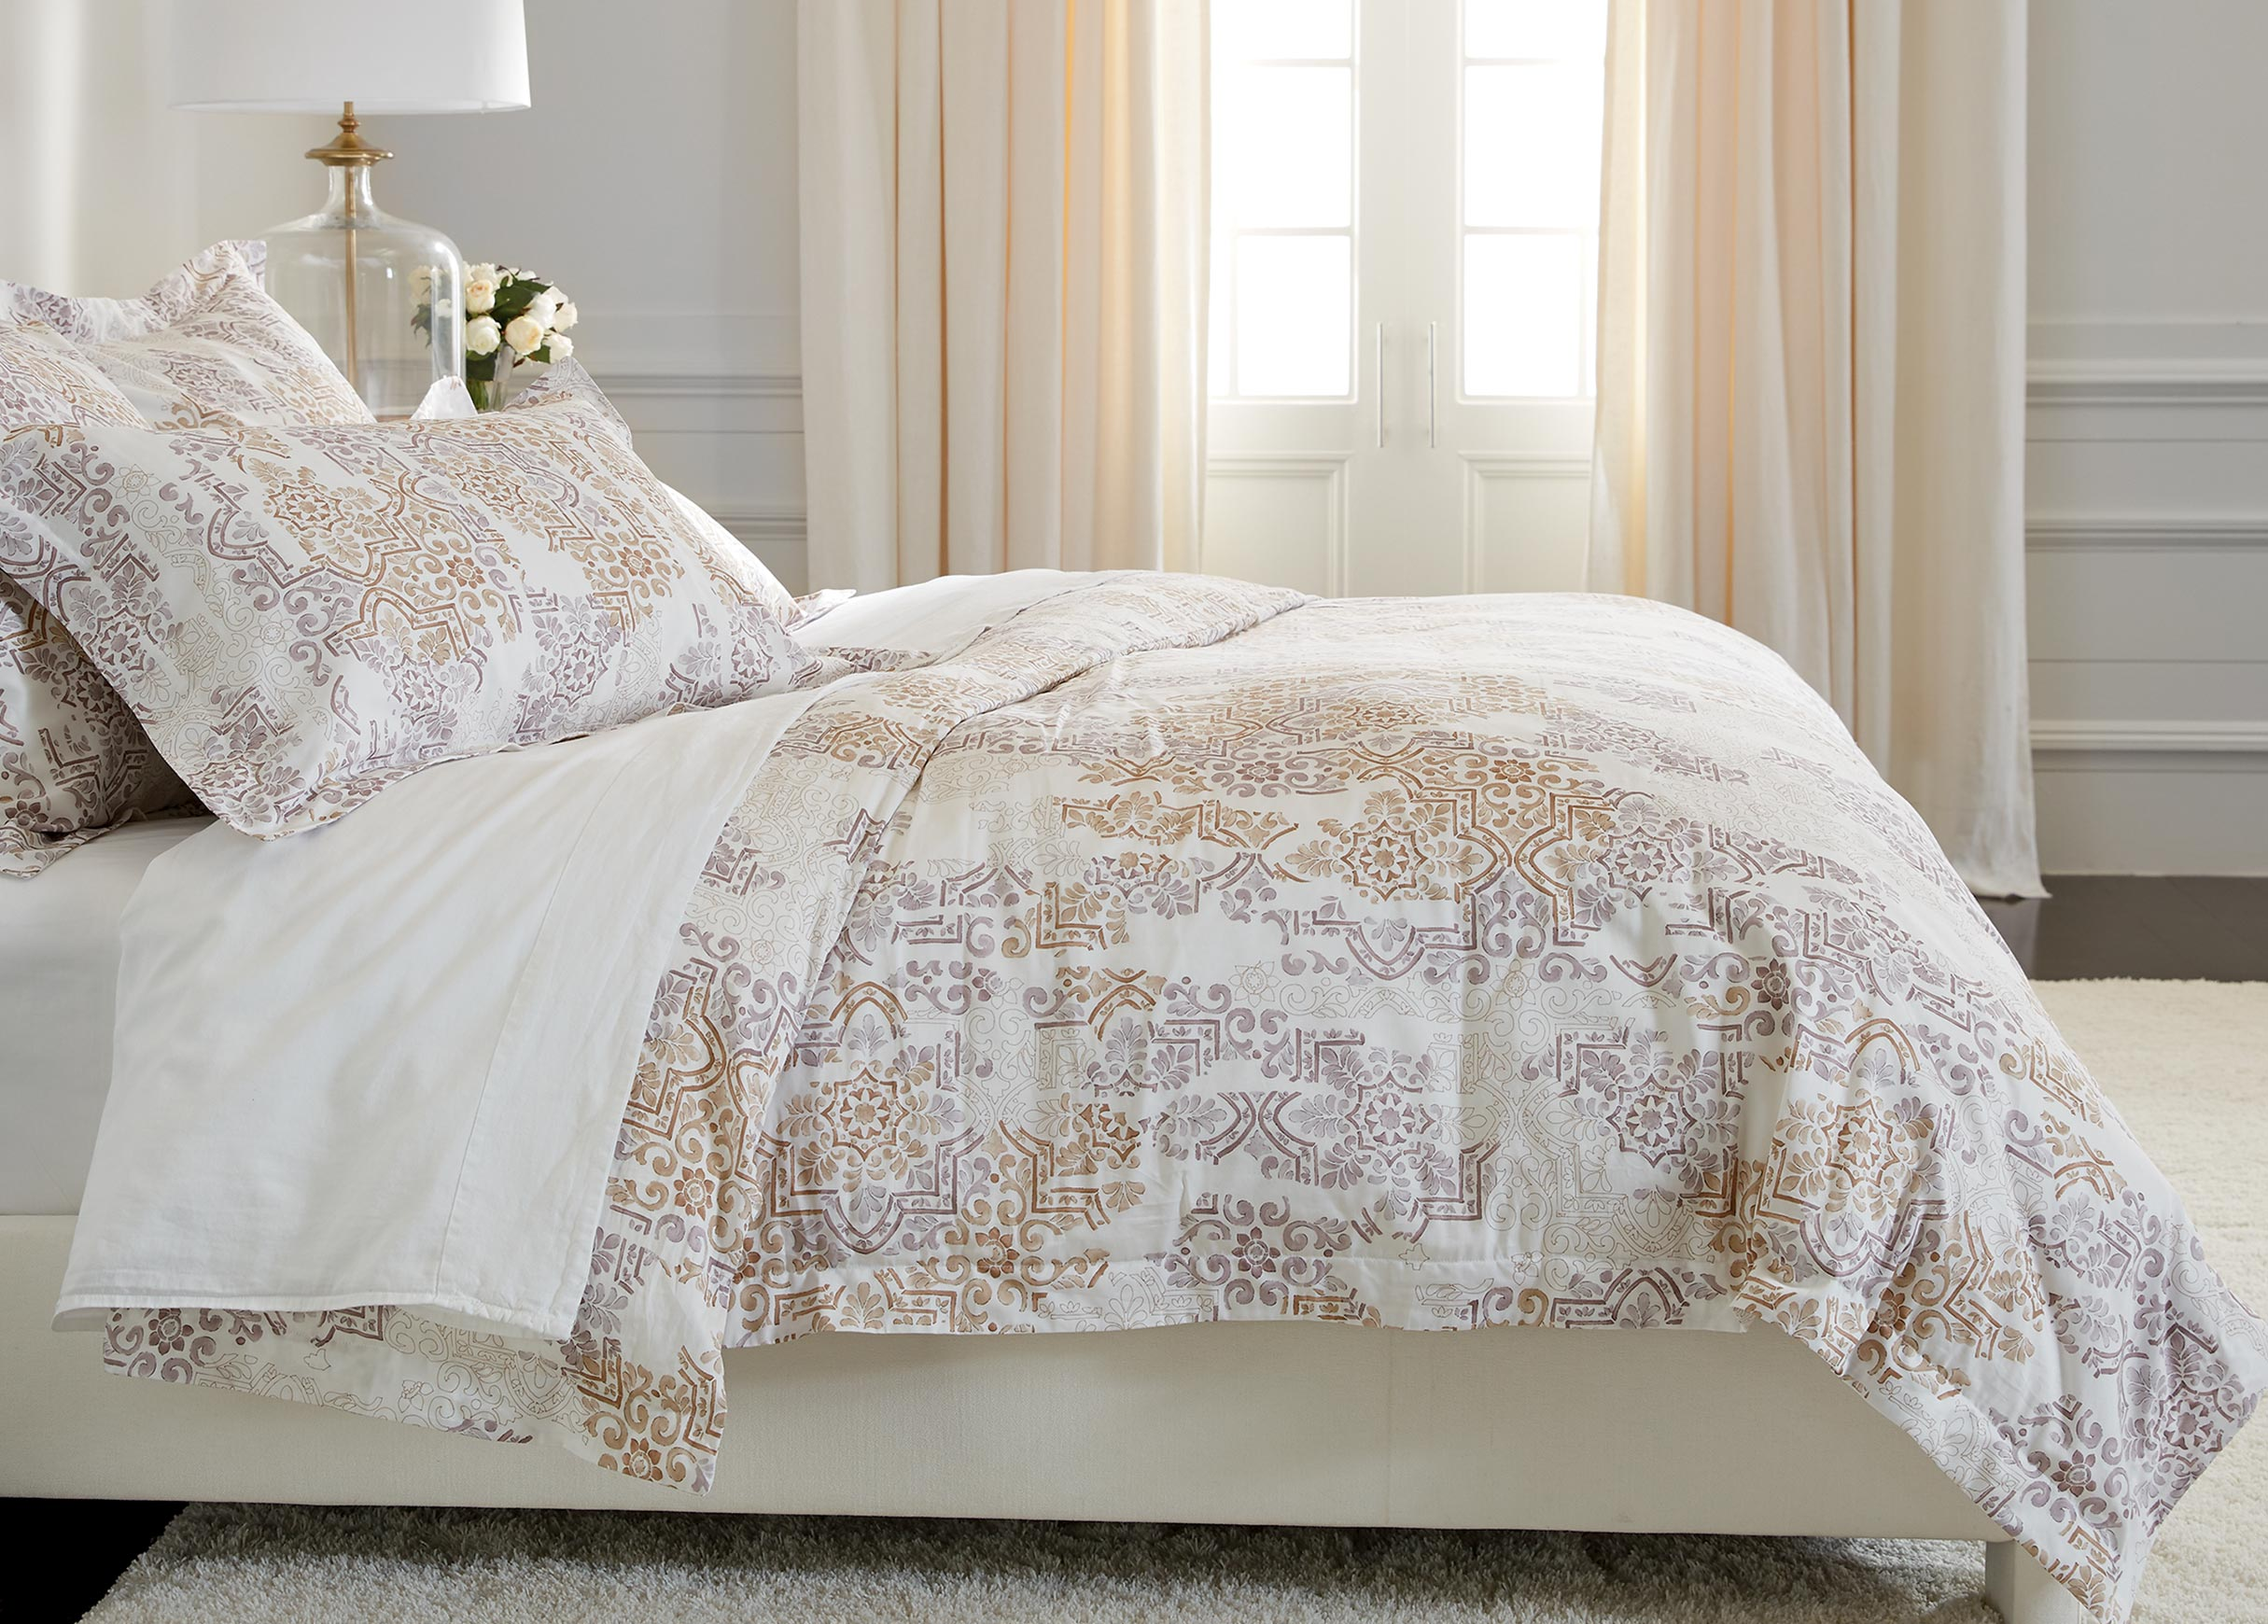 moroccan duvet boards bedsheets covers best get head acroos uae dubai abu buy in ae dhabi cover dubaiinteriors